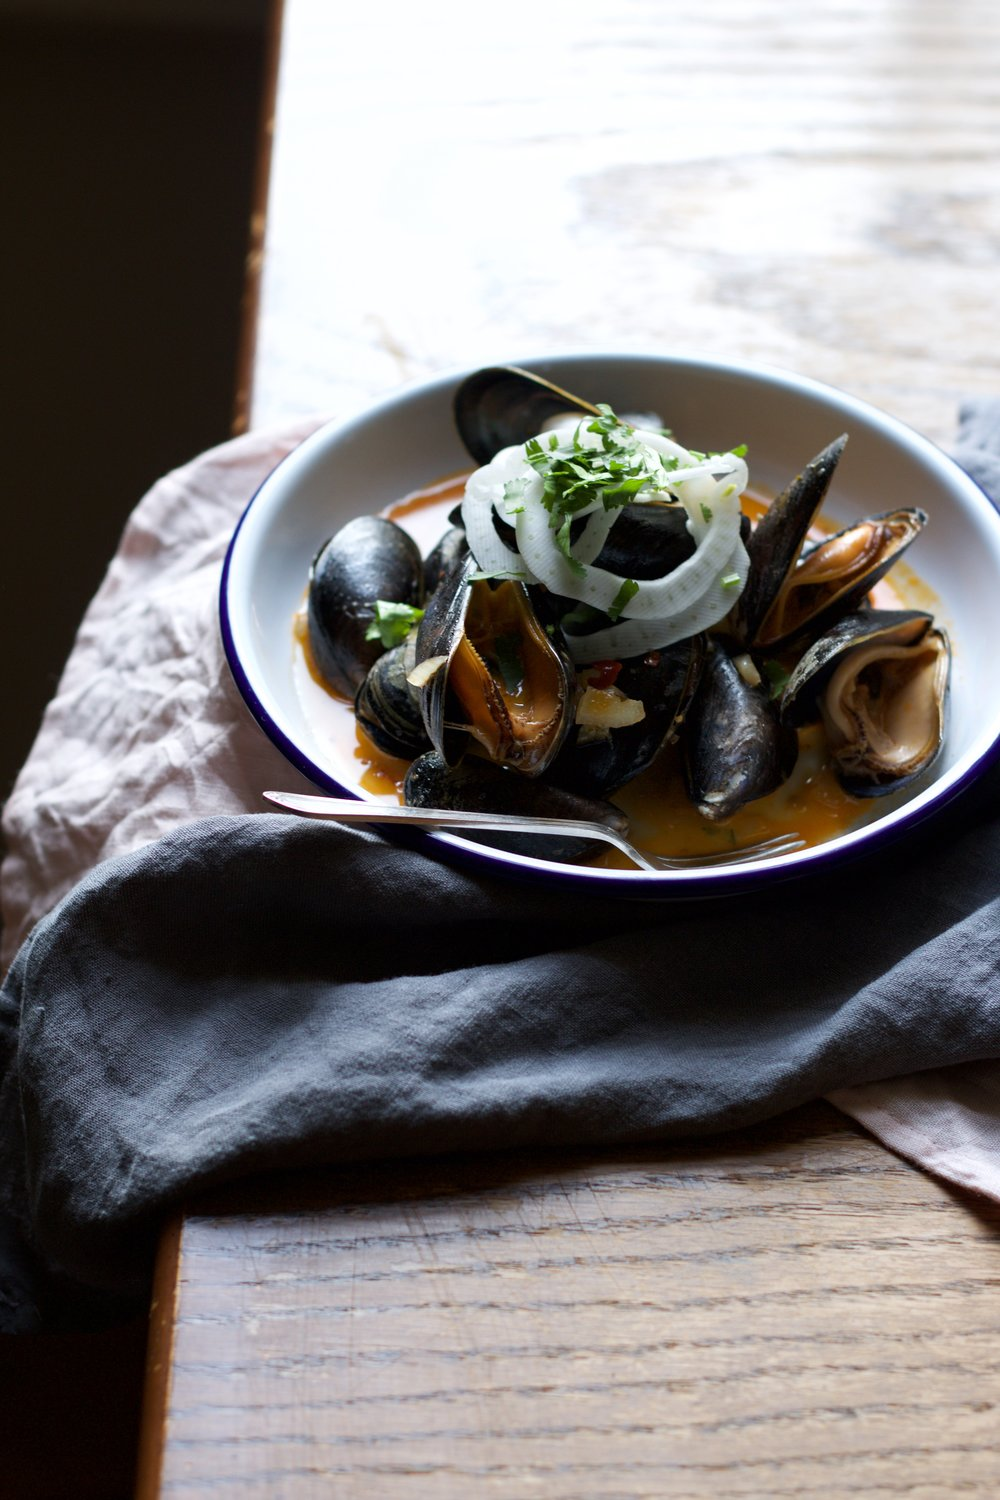 Mussels styled by Jette Virdi